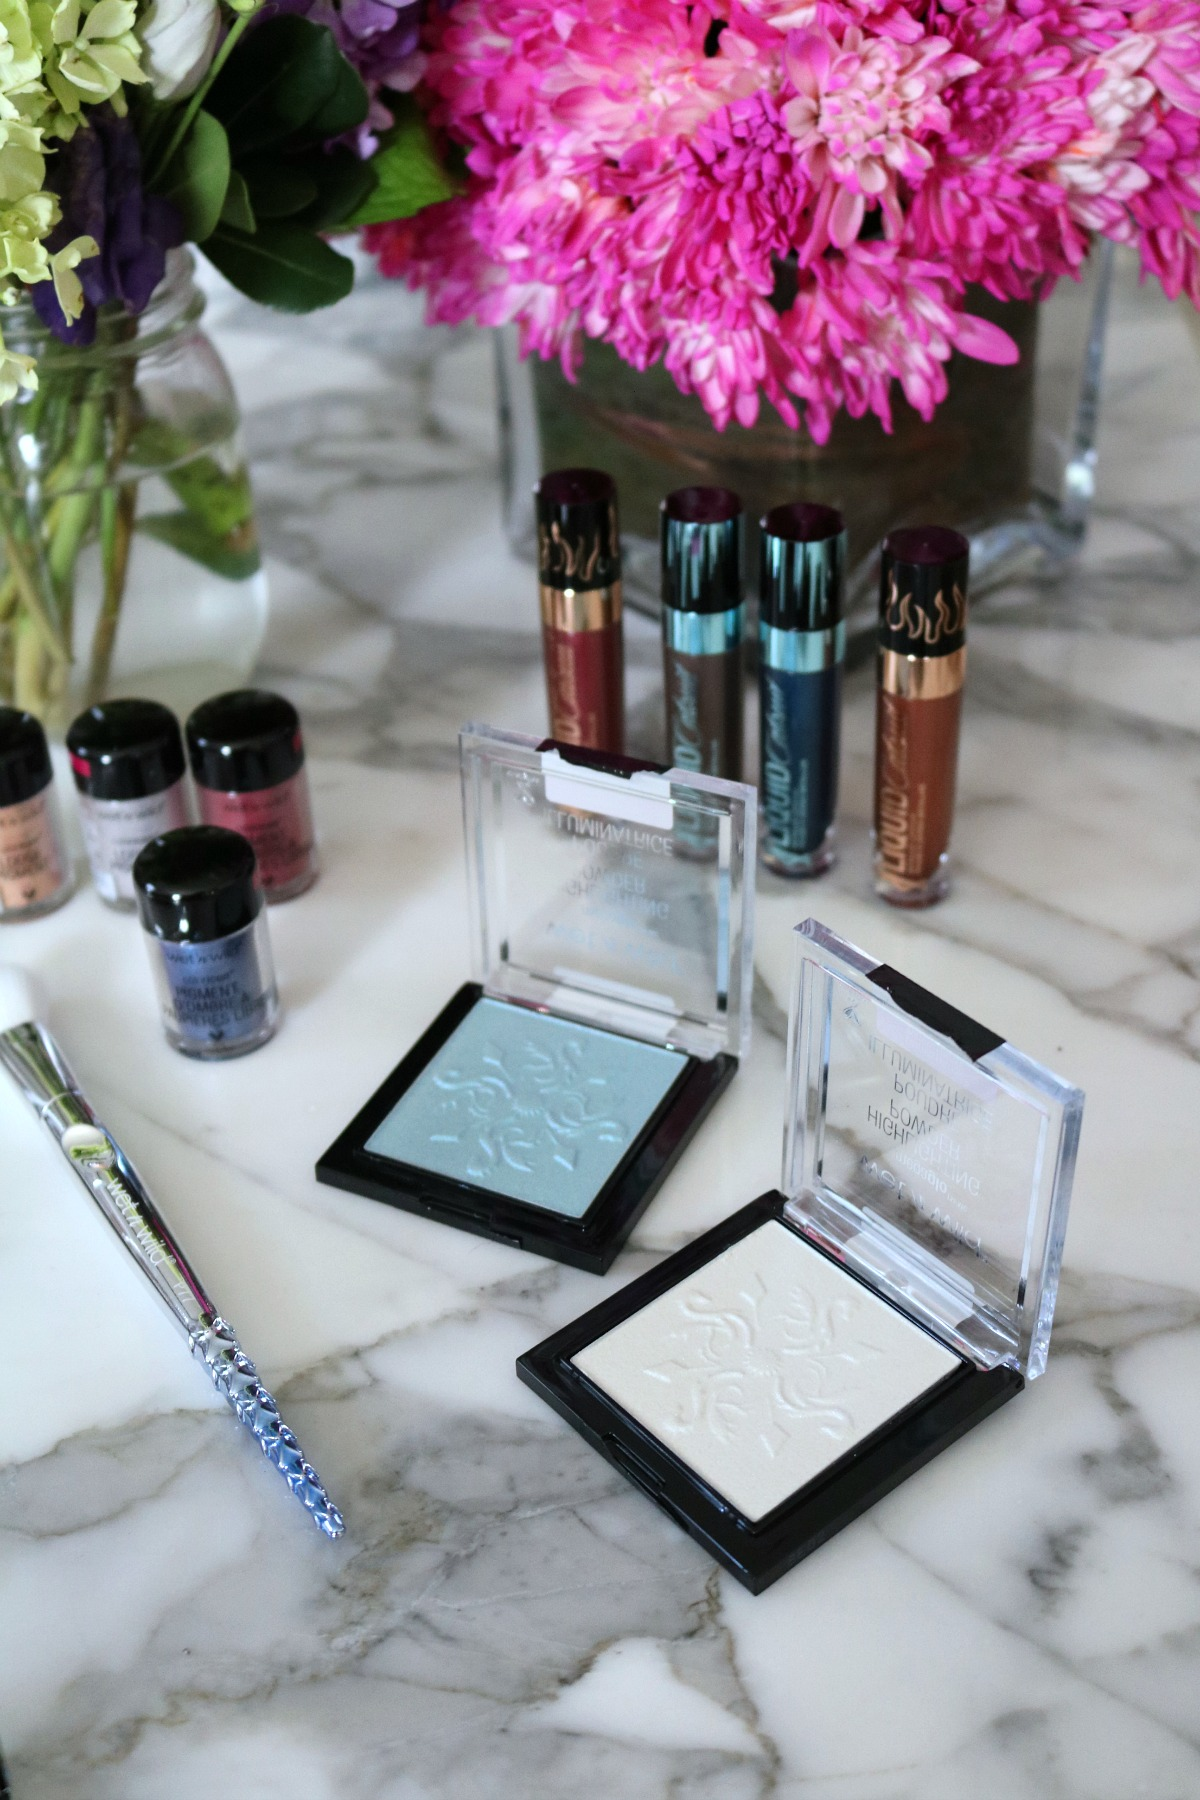 Wet n Wild Fire and Ice Collection Review I DreaminLace.com #Makeup #CrueltyFreeBeauty #DrugstoreMakeup